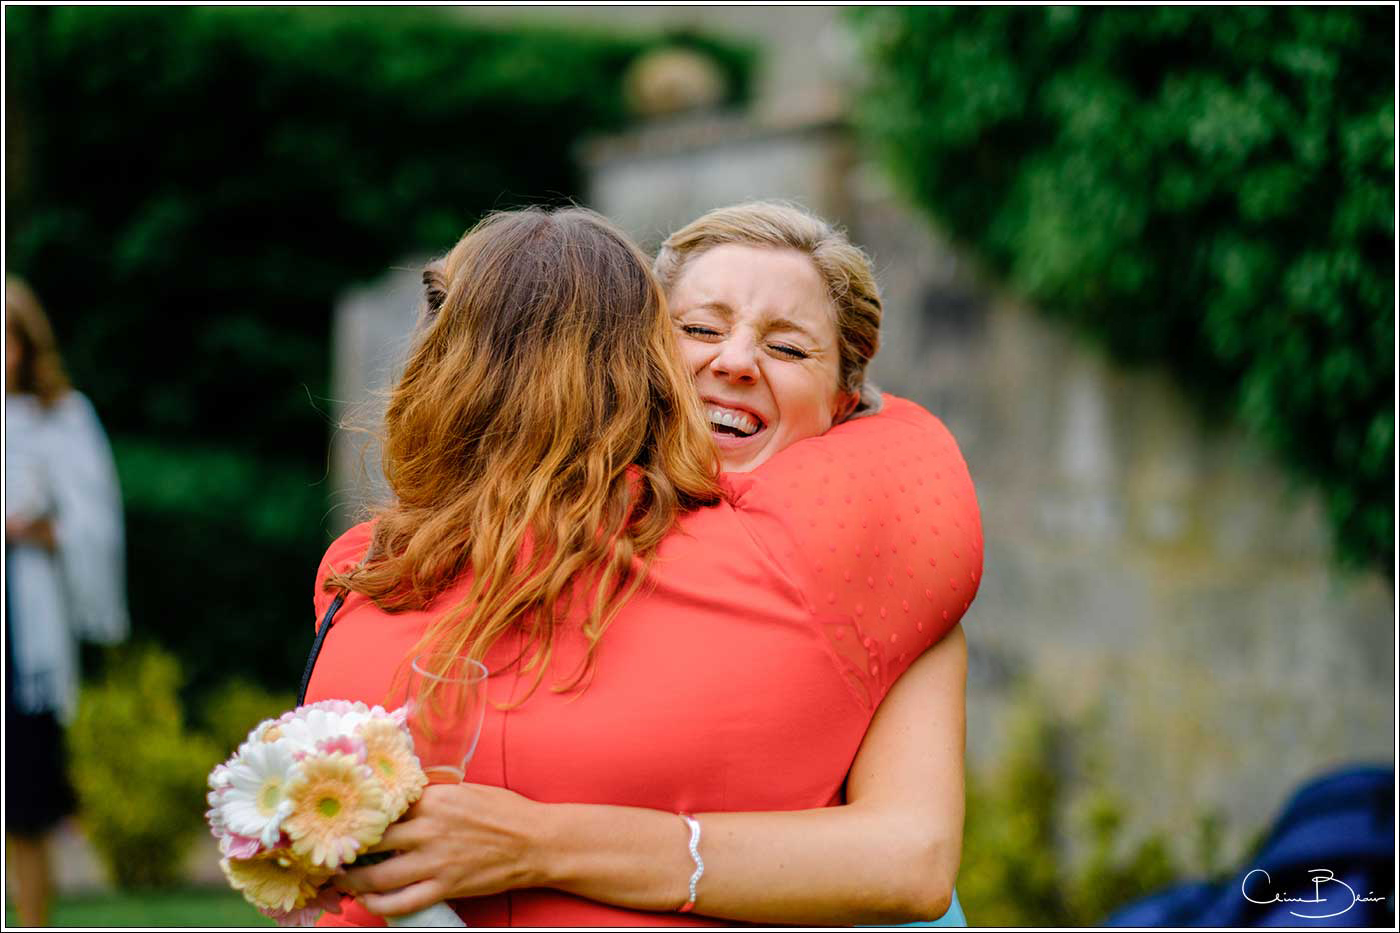 Coombe Abbey wedding photography showing 2 women guest hugging each other laughing